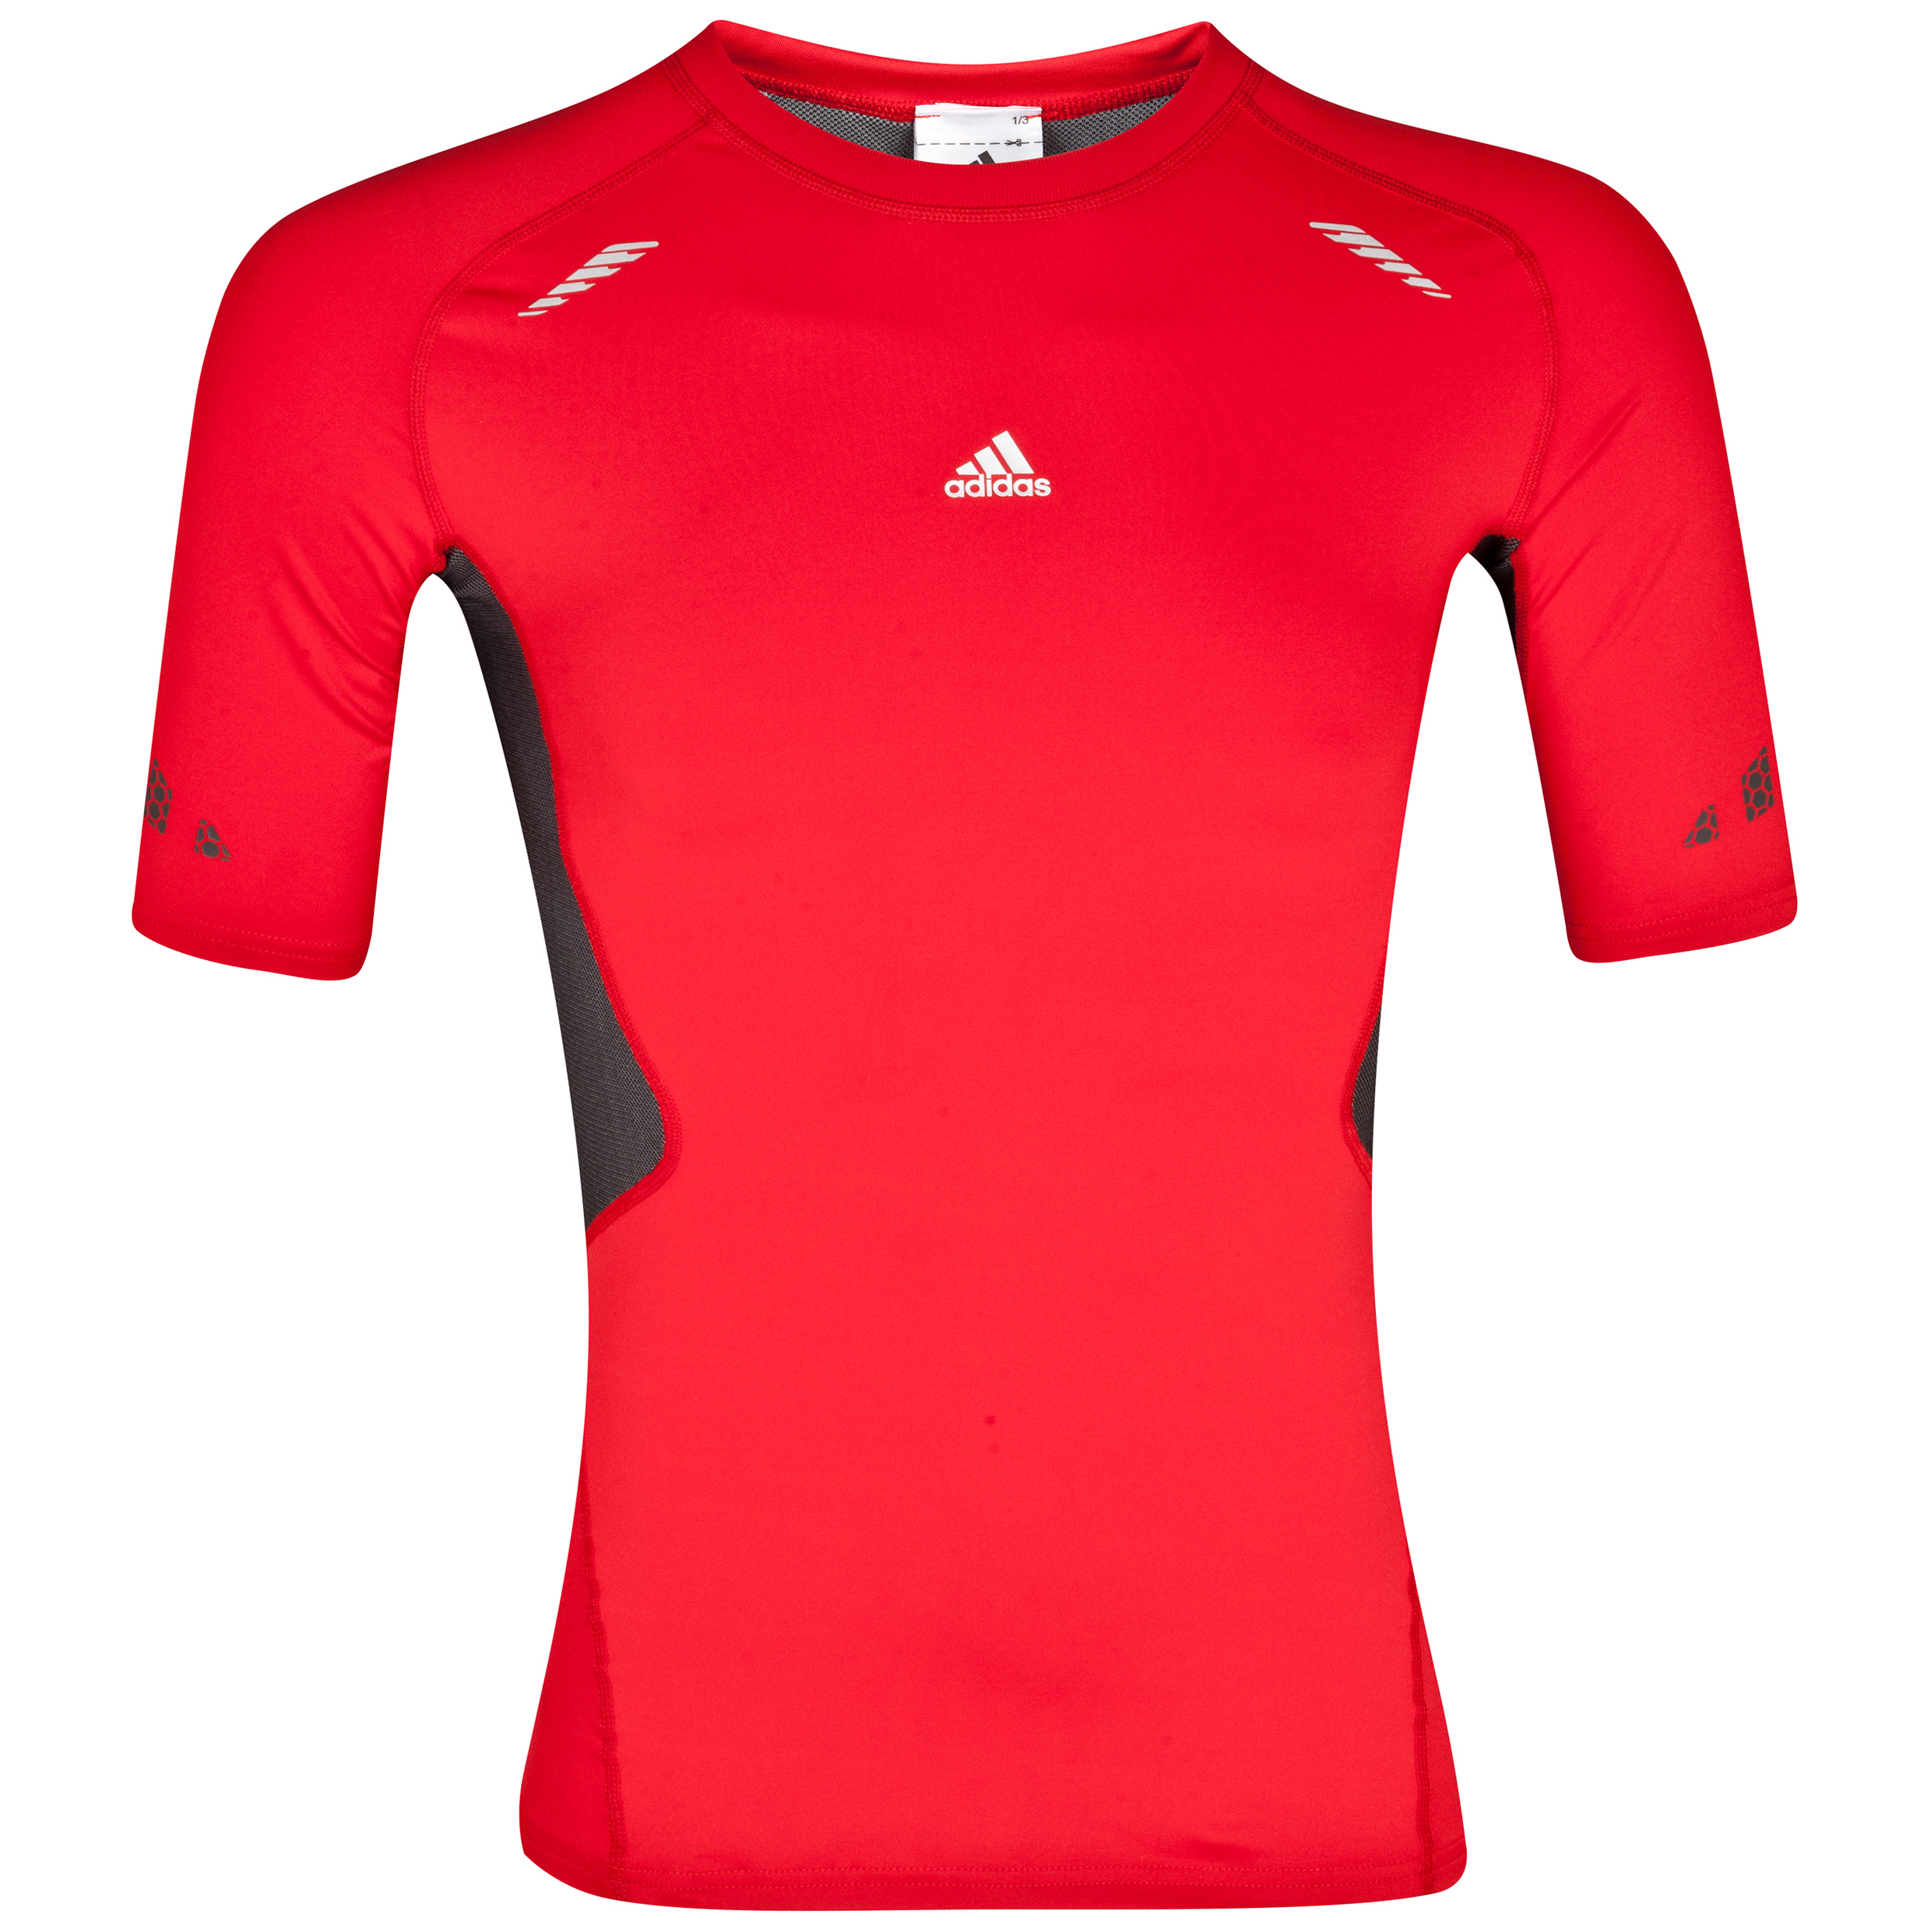 Adidas TechFit Preperation Baselayer Top Red